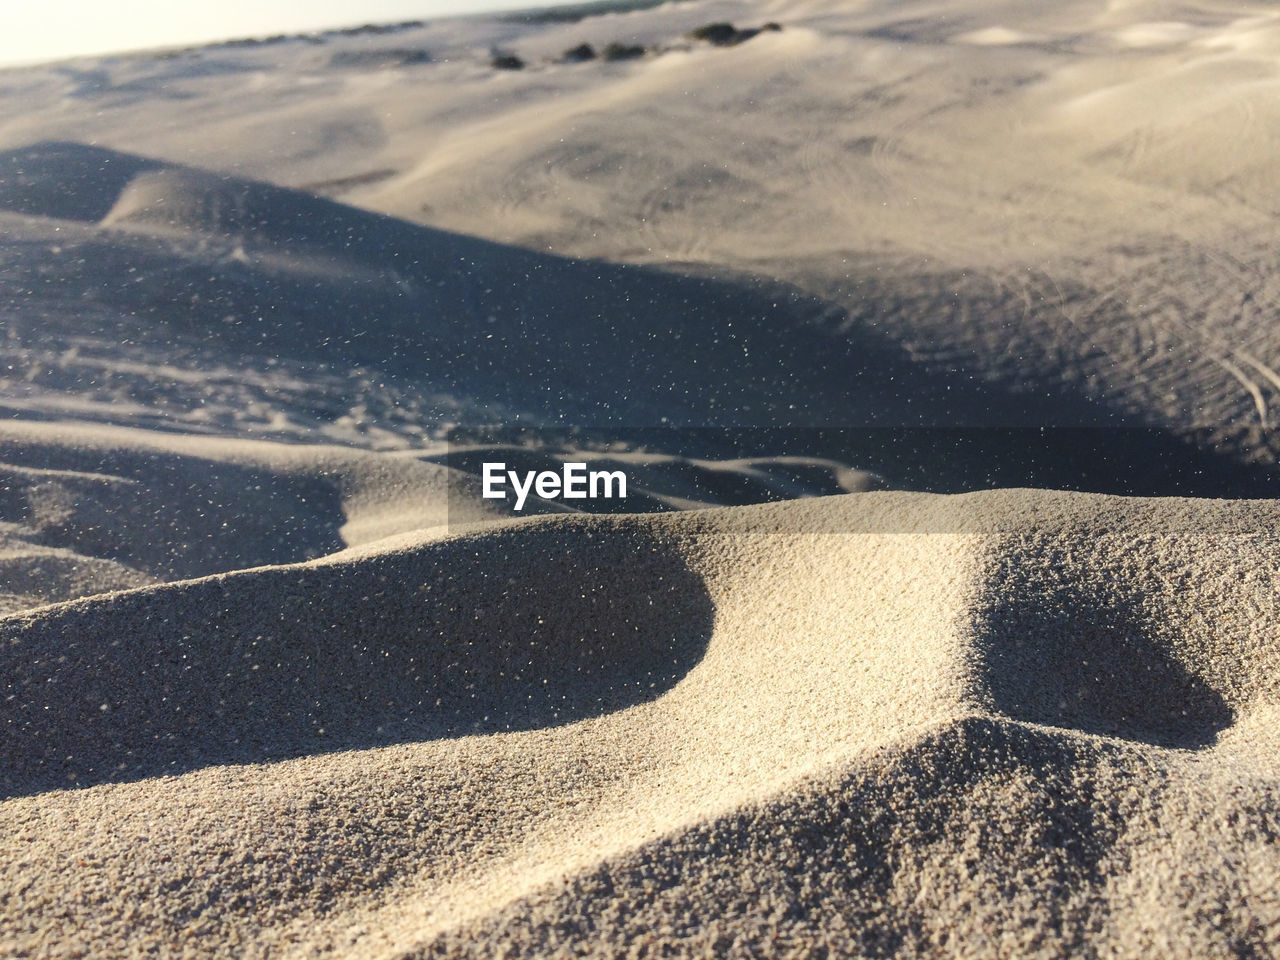 land, nature, sand, sunlight, no people, day, landscape, beach, tranquility, outdoors, high angle view, tranquil scene, shadow, desert, backgrounds, pattern, scenics - nature, full frame, beauty in nature, close-up, arid climate